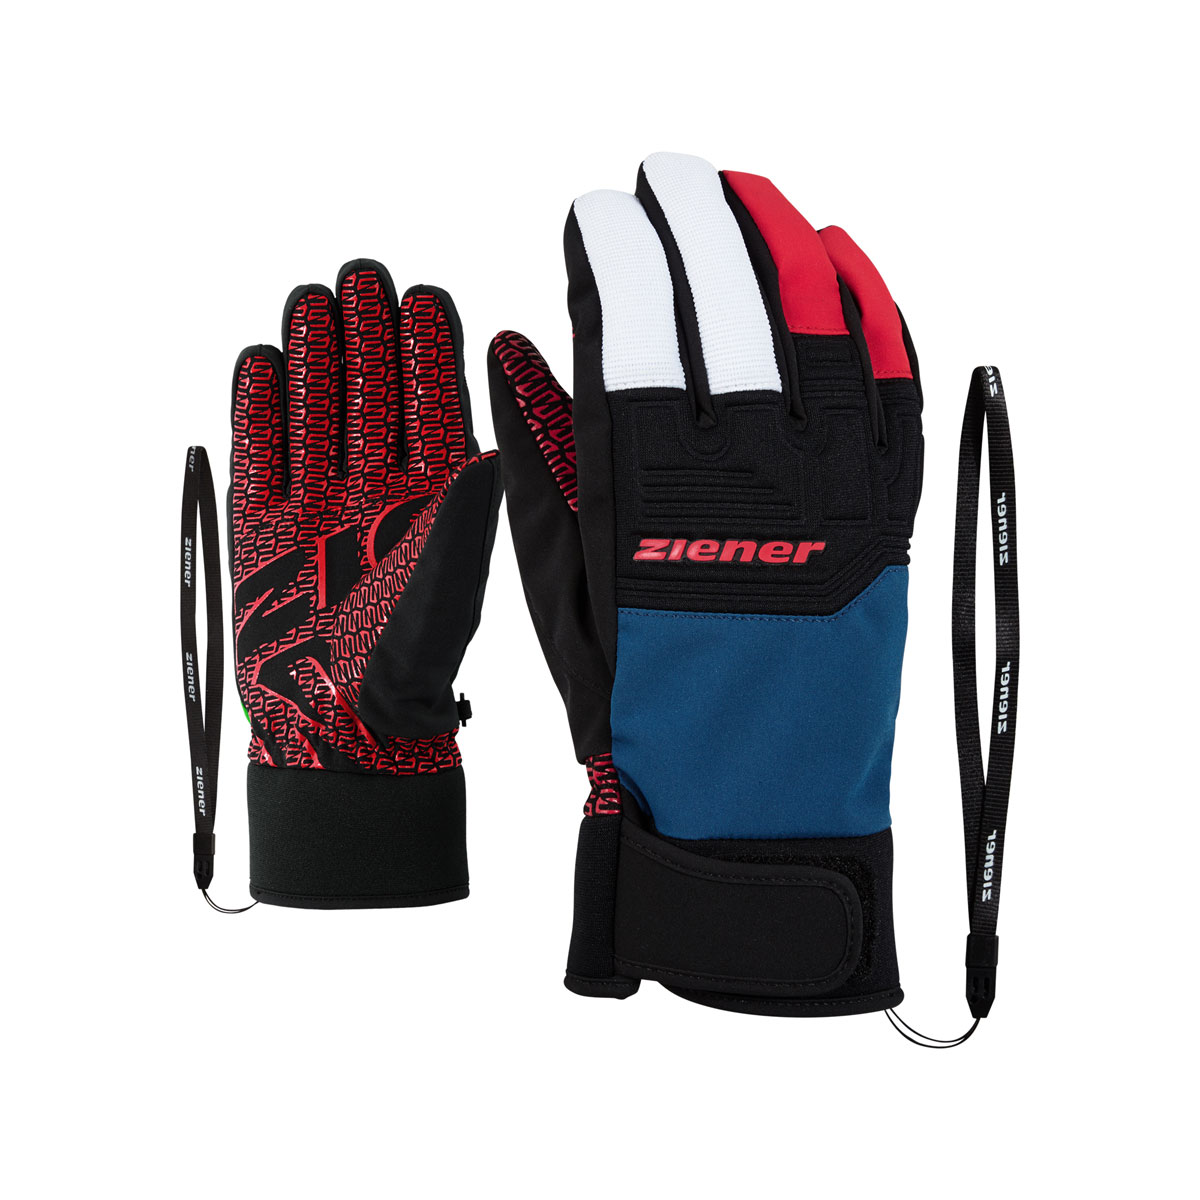 GARIM AS® glove ski alpine ZIENER Gloves | Skiwear